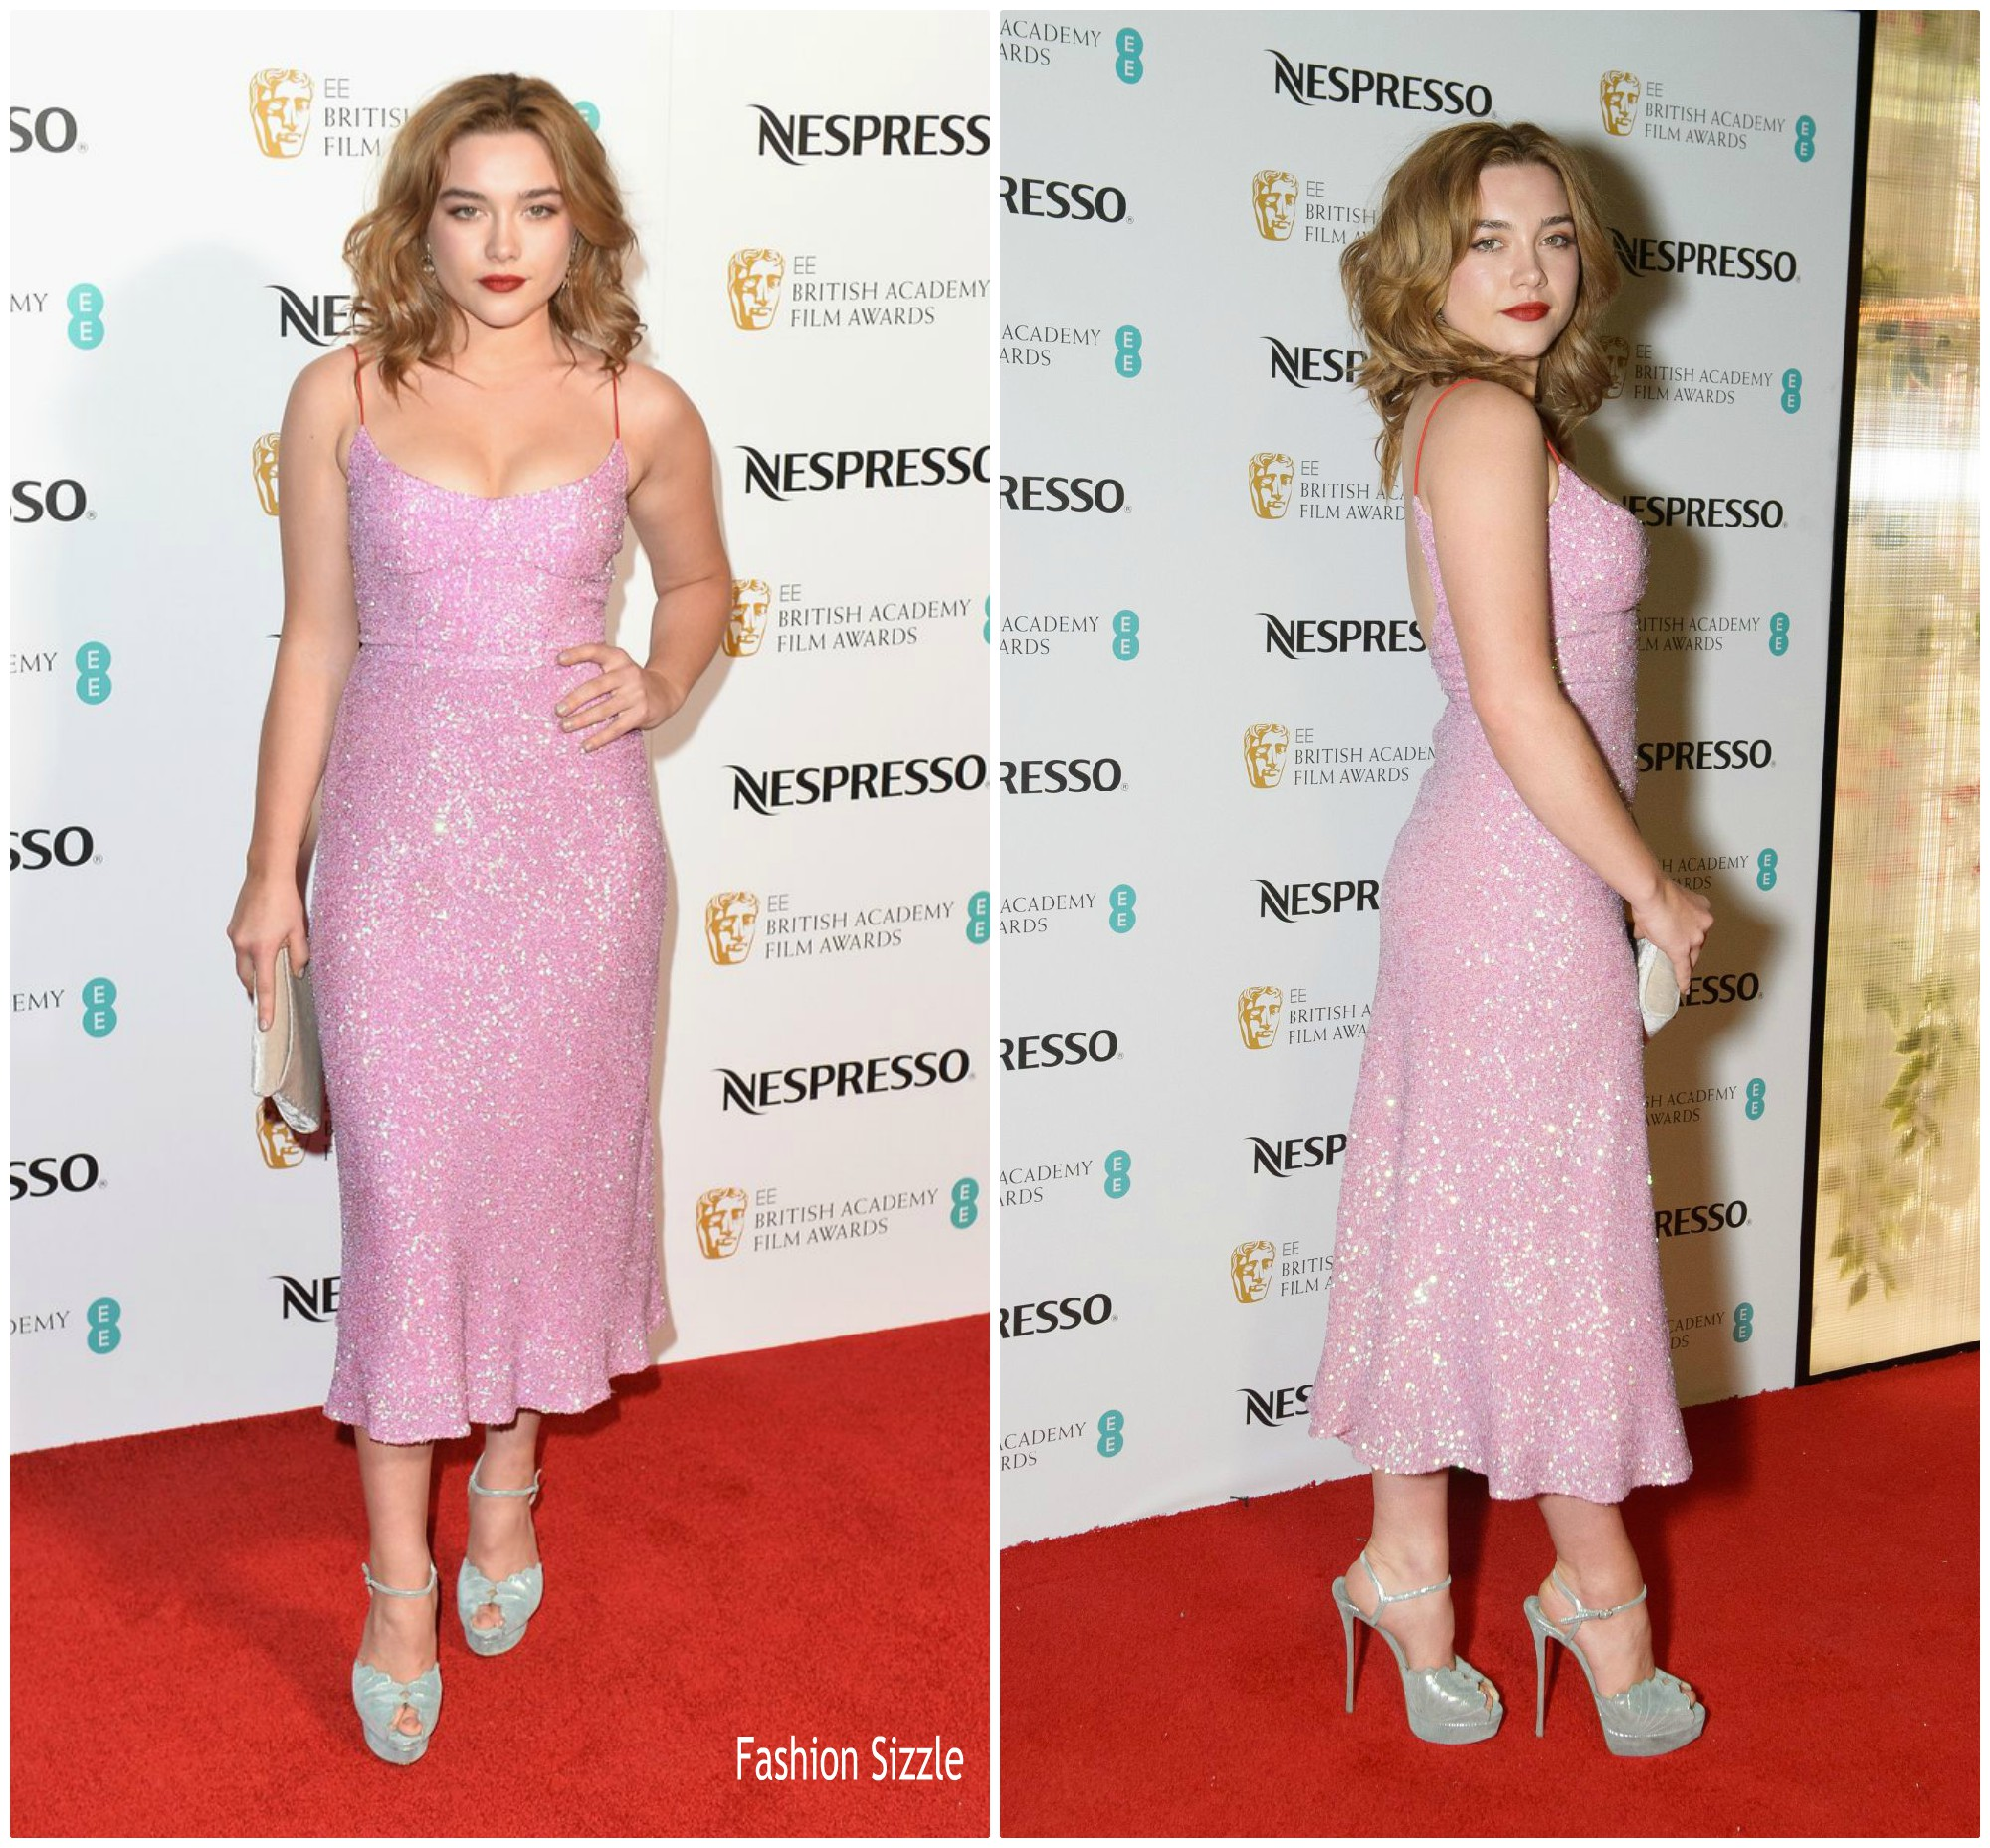 florence-pugh-in-marikarian-ee-british-academy-film-awards-nominees-party